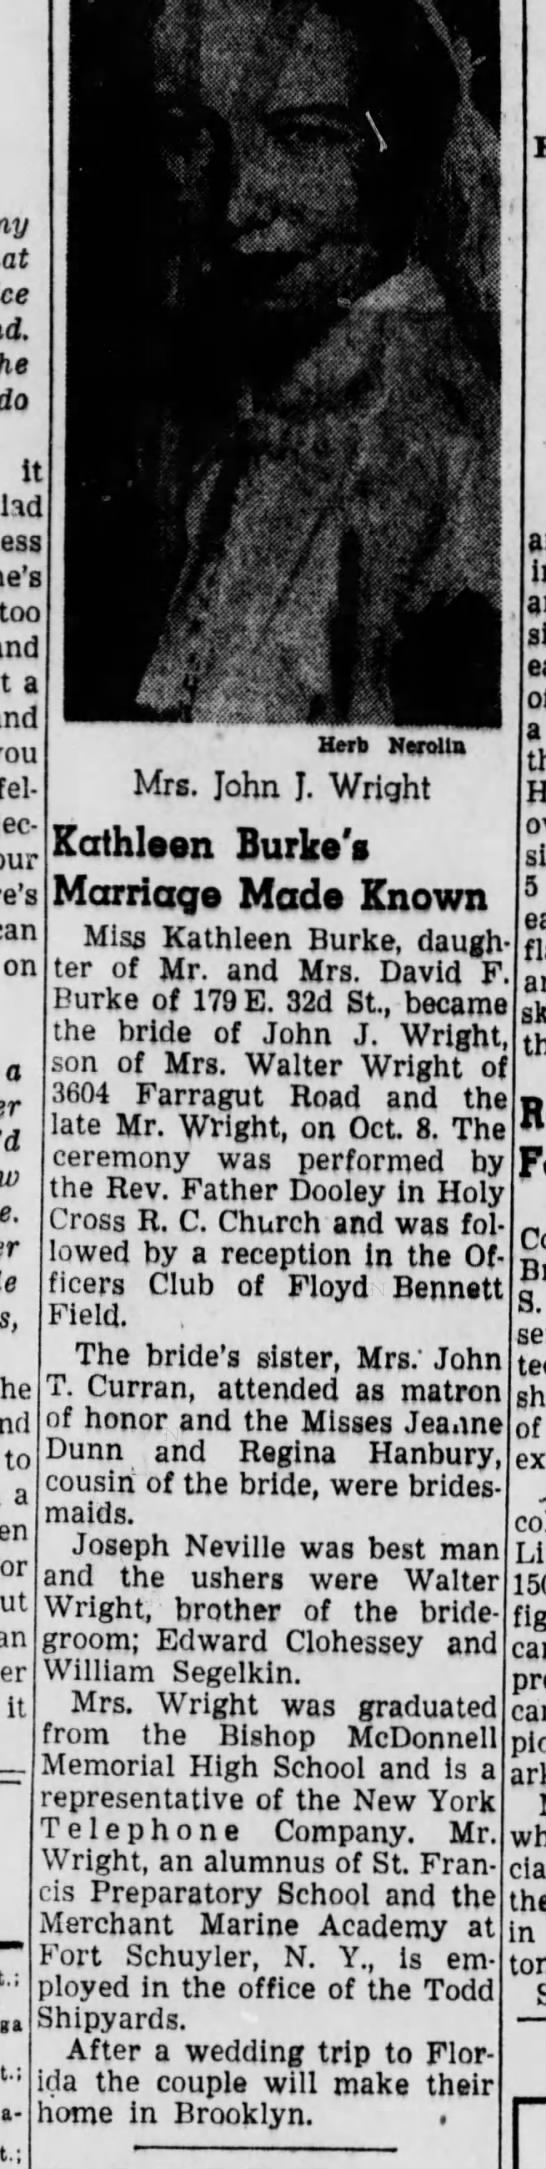 Kathleen Burke Marriage to John J Wright  on Oct 8, 1949  Brooklyn Daily Eagle -